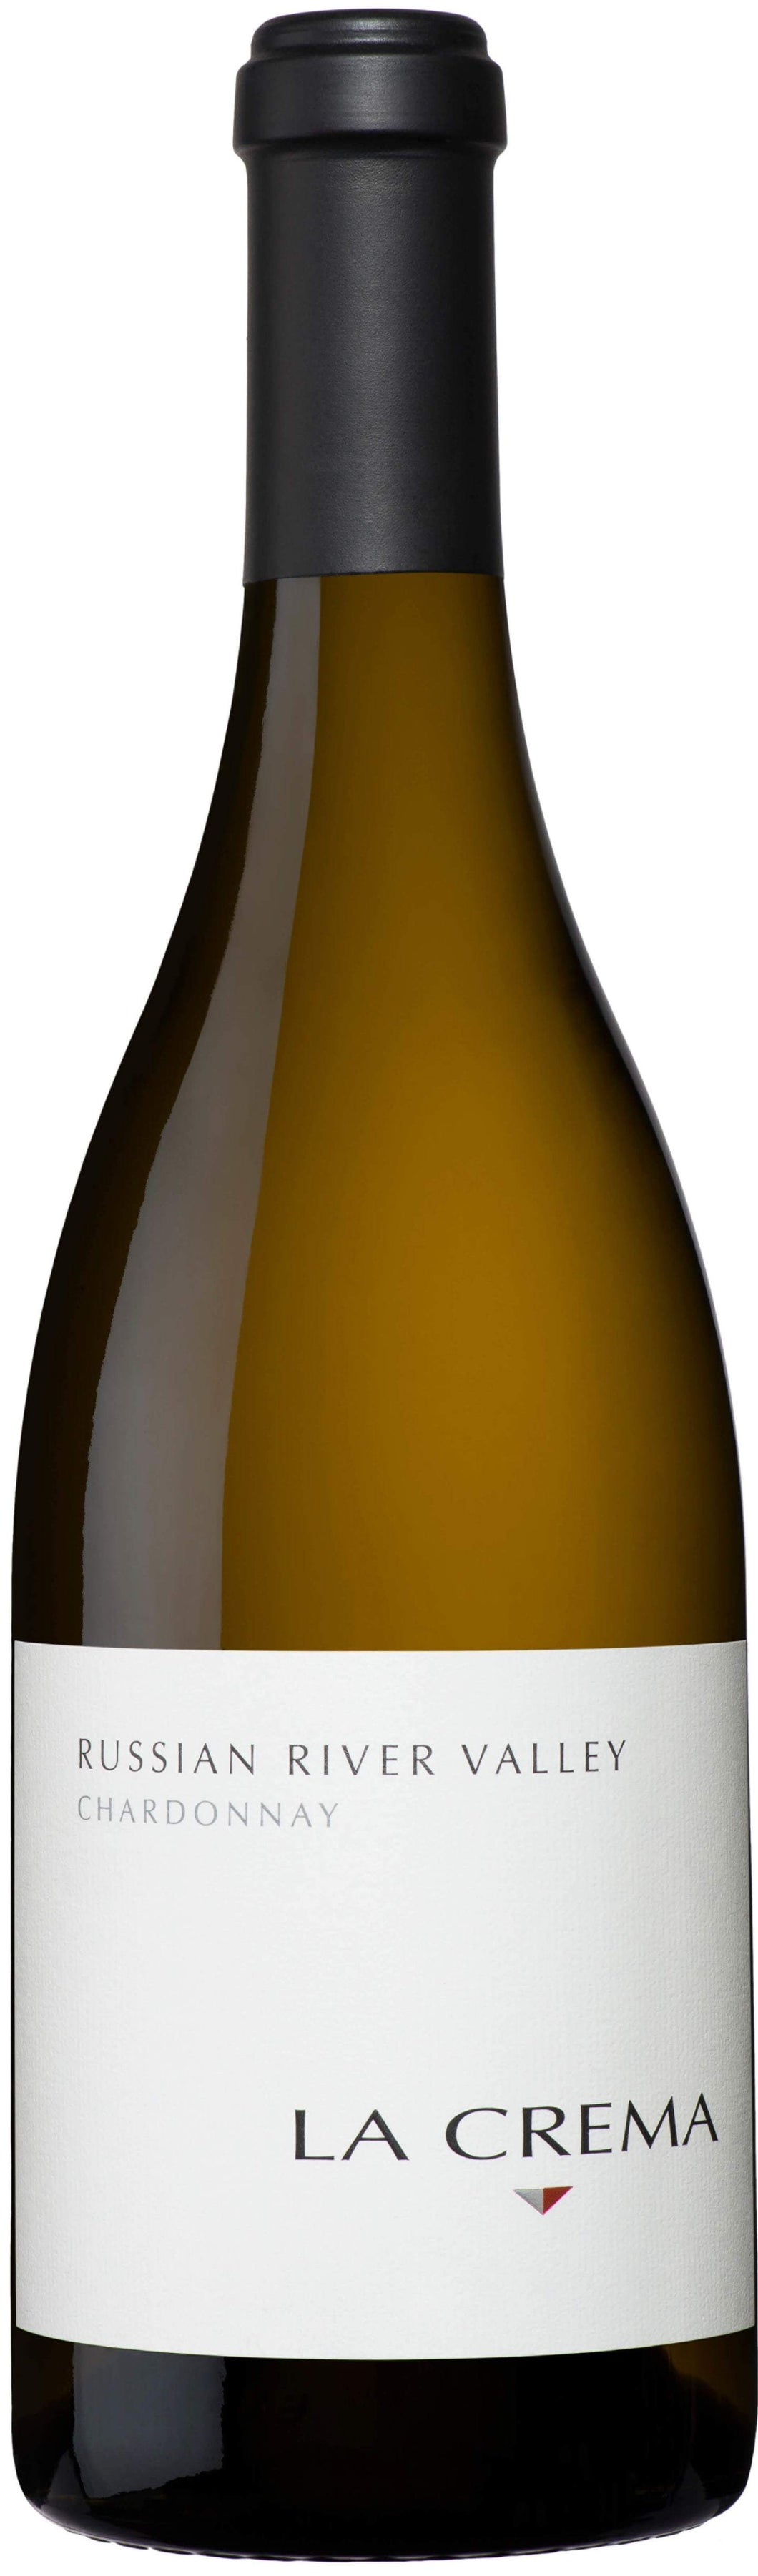 La Crema Chardonnay Russian River Valley 2017